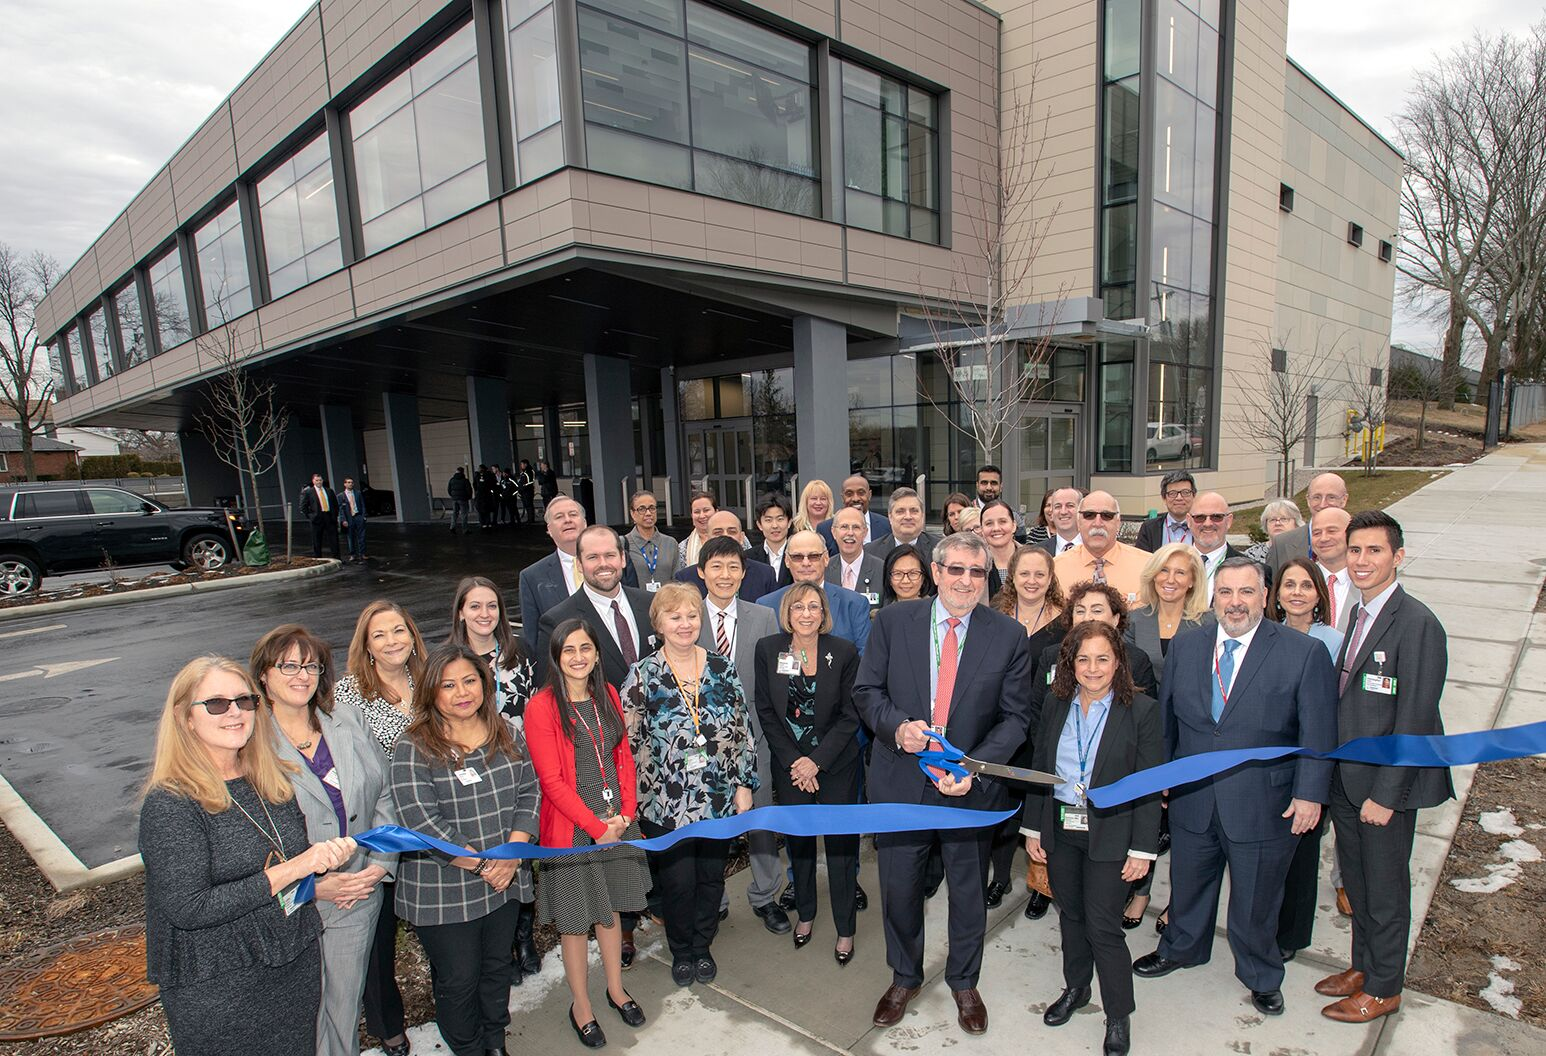 Michael Dowling with the Northwell Health Labs team at the opening of a $47.7 million shared, centralized laboratory in Little Neck, Queens.